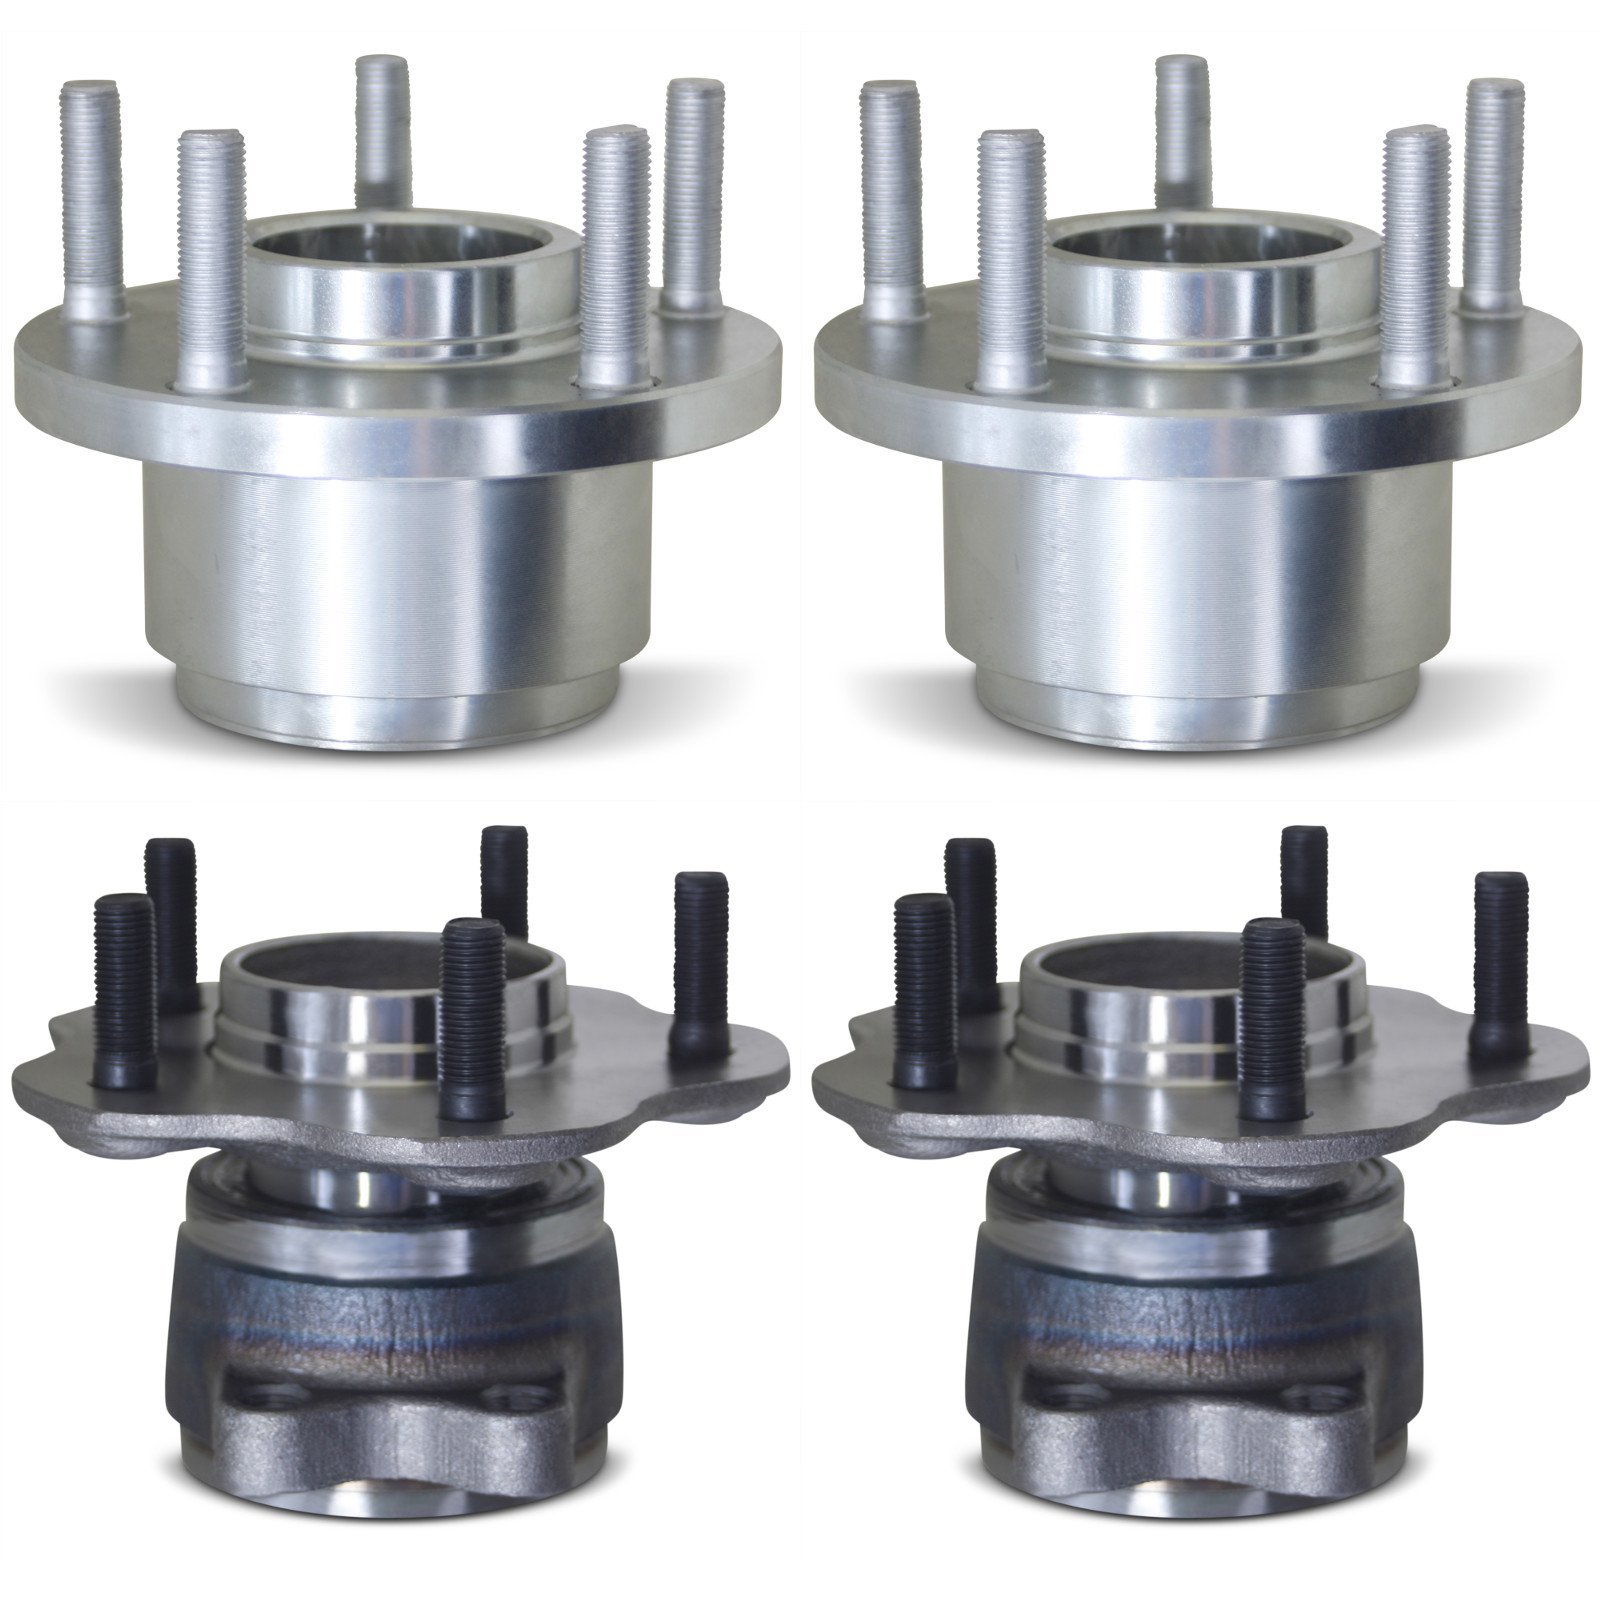 Tomegun 4 to 5 Lug Wheel Hubs Bearing Conversion Set of 4 (Front/Rear) For 89-94 Nissan 240SX S13 by Tomegun (Image #2)